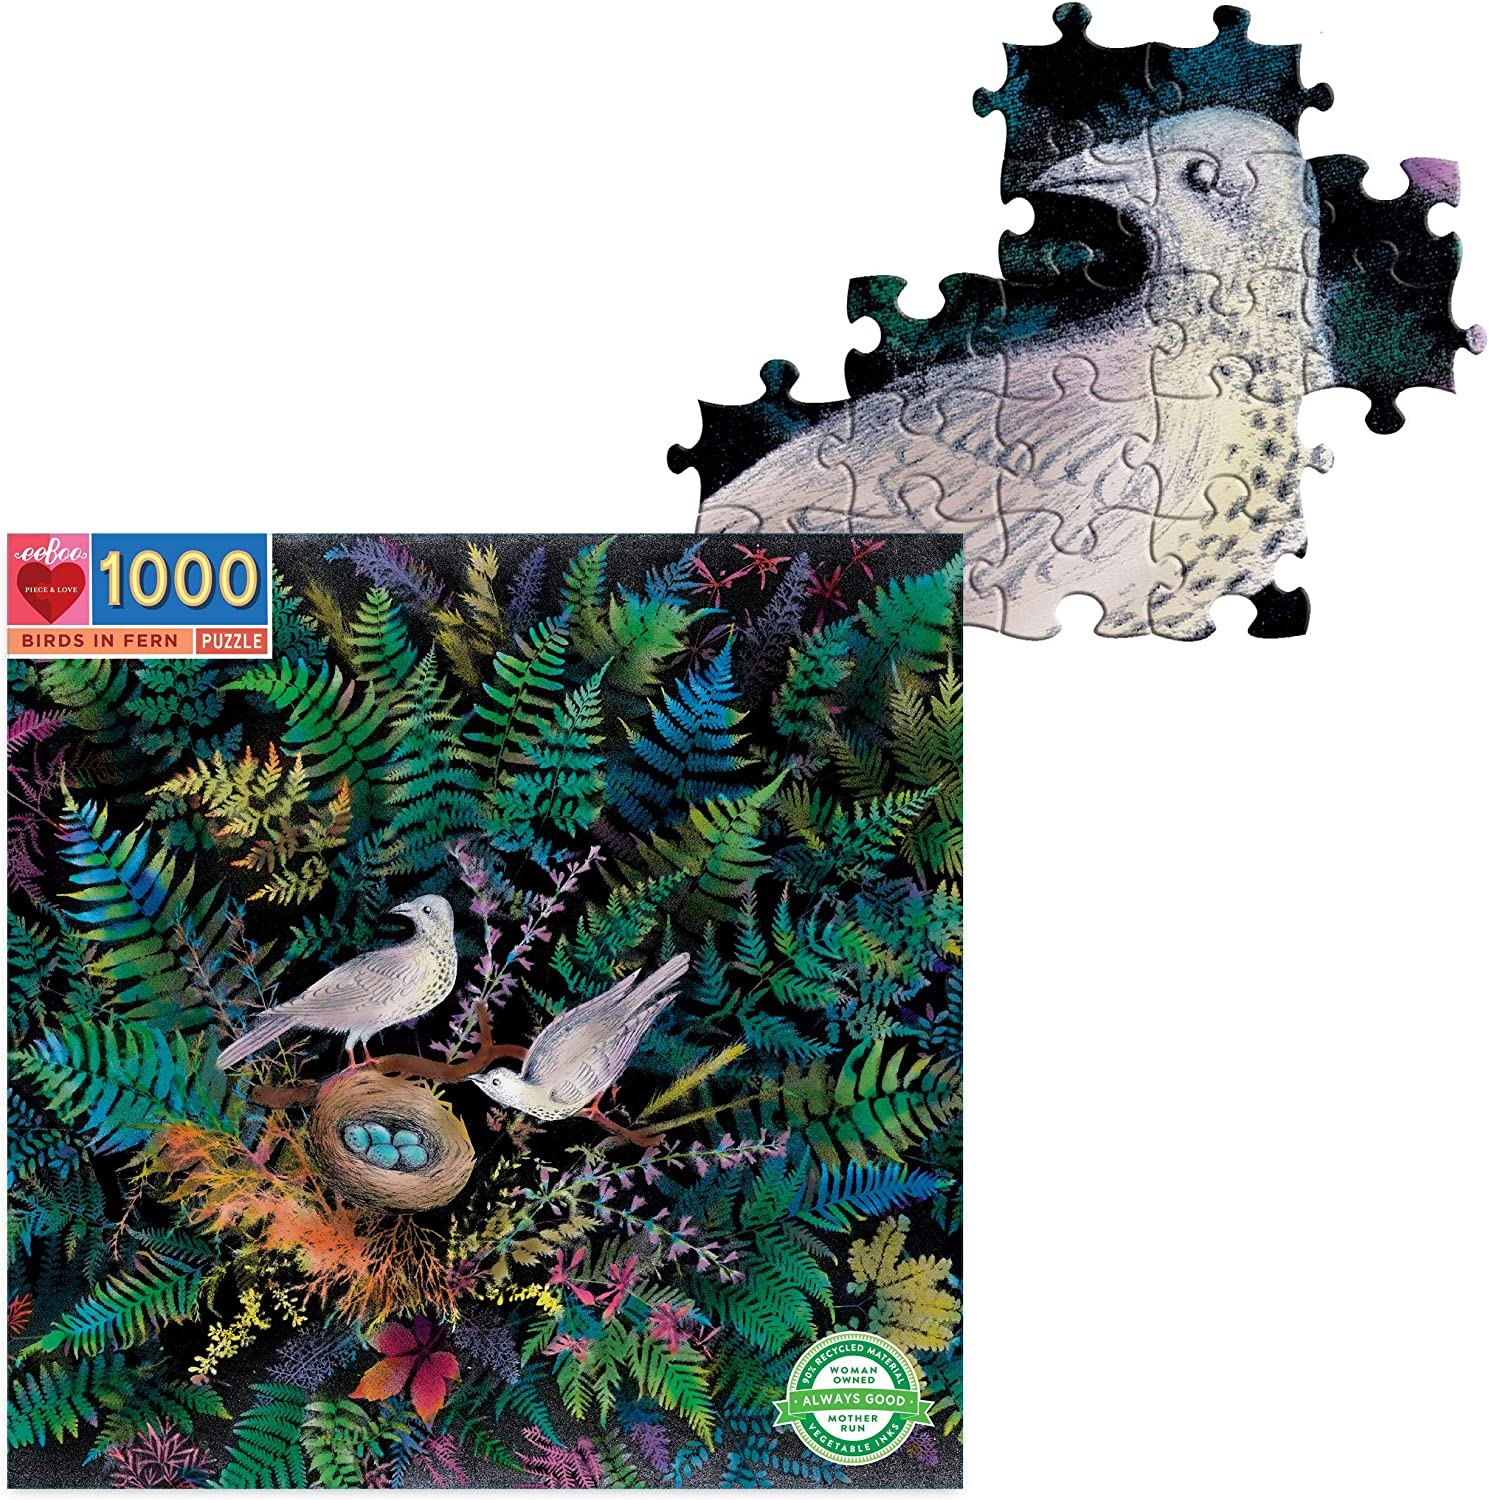 eeBoo's Piece and Love Birds in Fern 1000 Piece Square Adult Jigsaw Puzzle